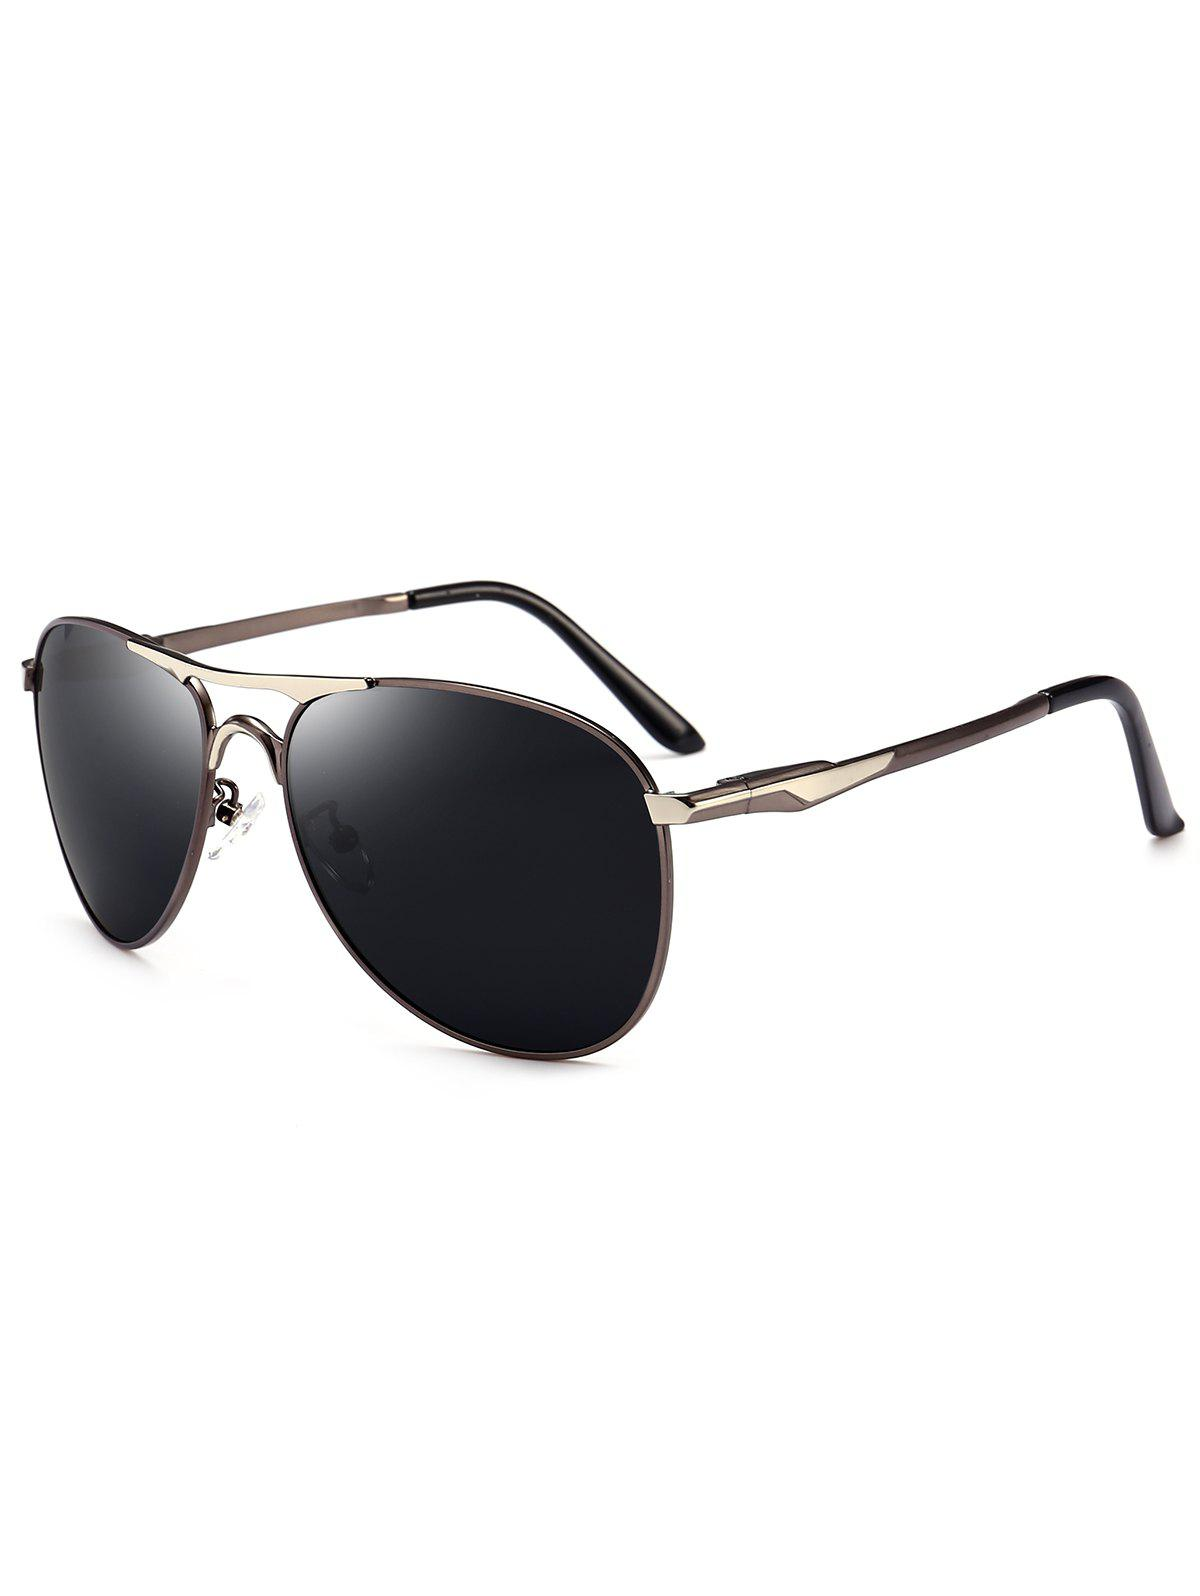 Full Frame Metallic Pilot Sunglasses - GUN GREY FRAME/GREY LENS